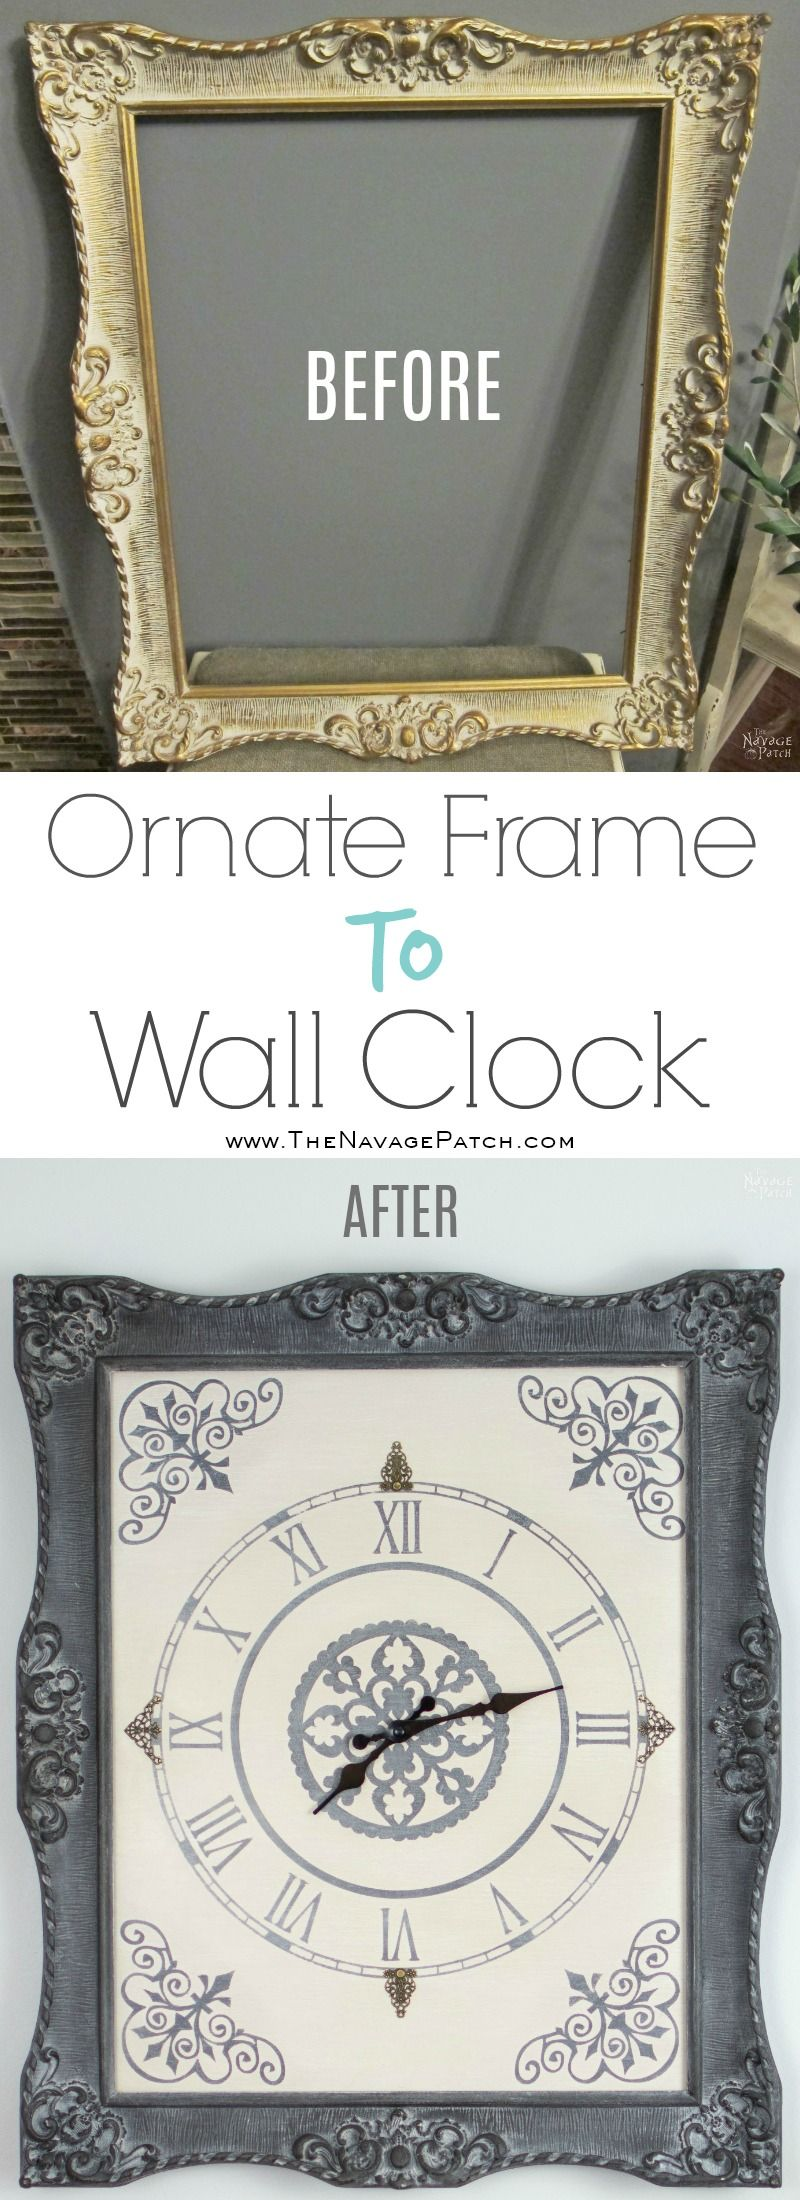 Ornate Frame to Wall Clock - The Navage Patch